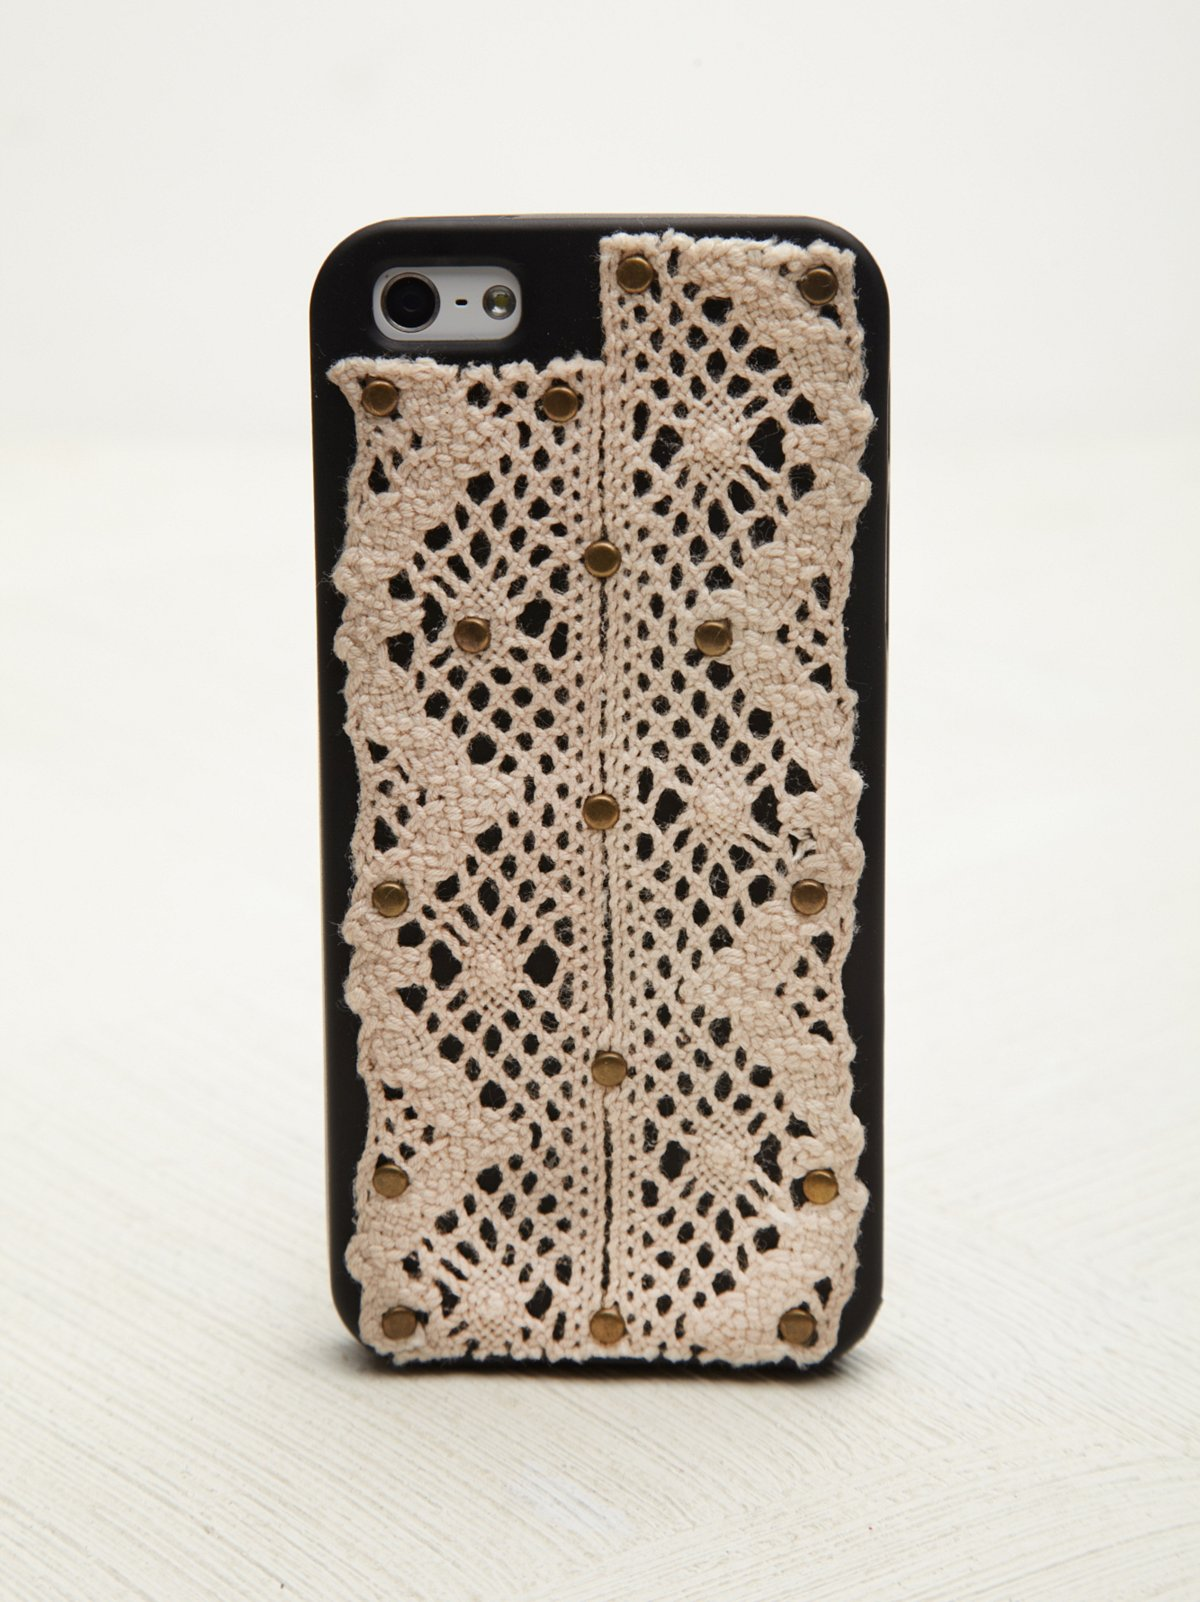 Crochet iPhone 4/5 Case